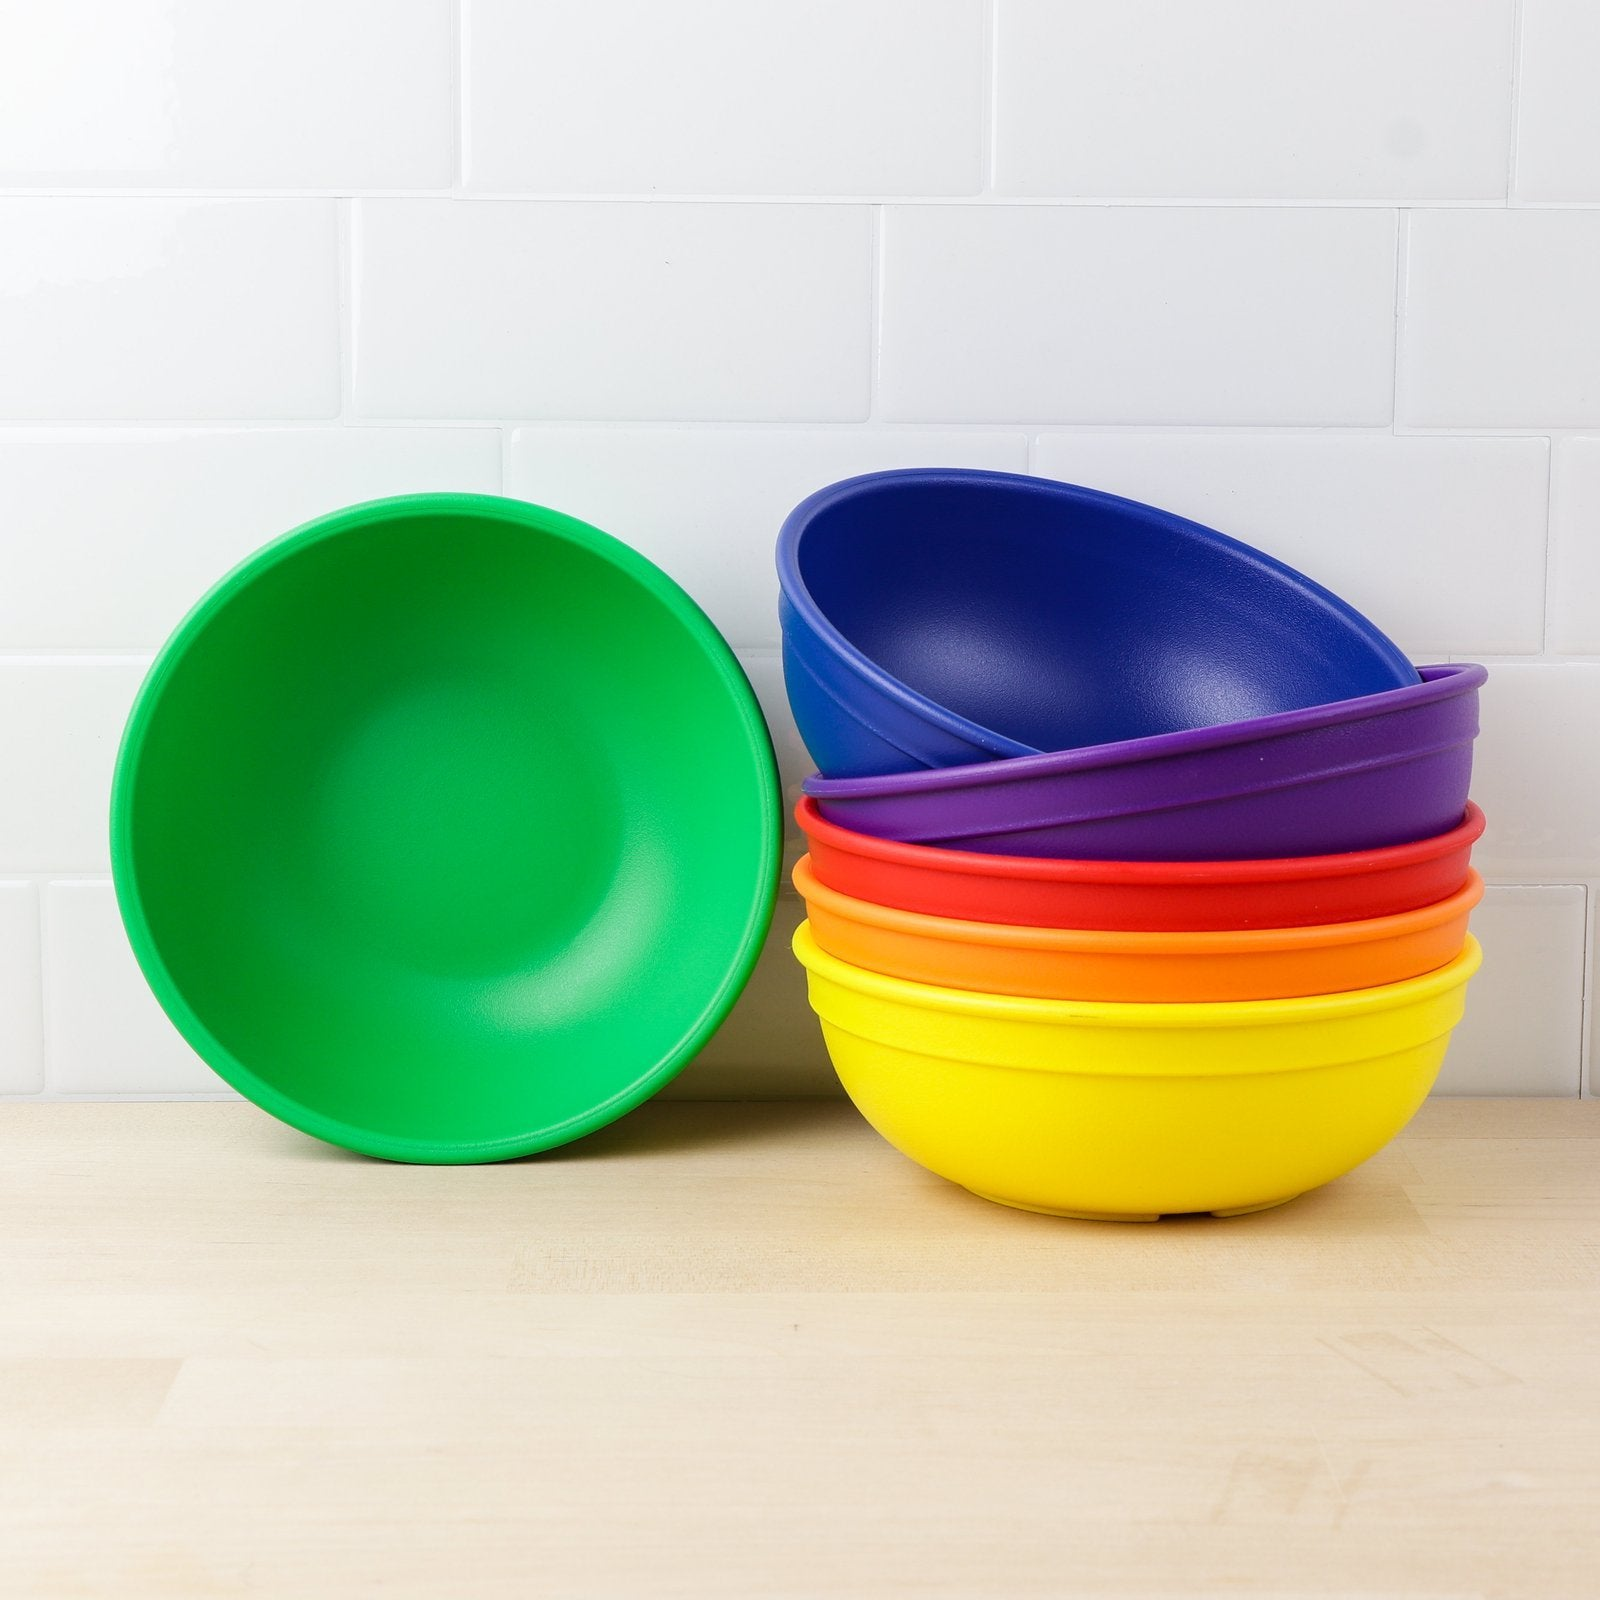 Replay 6 Piece Sets Crayon Box Replay Dinnerware Large Bowls at Little Earth Nest Eco Shop